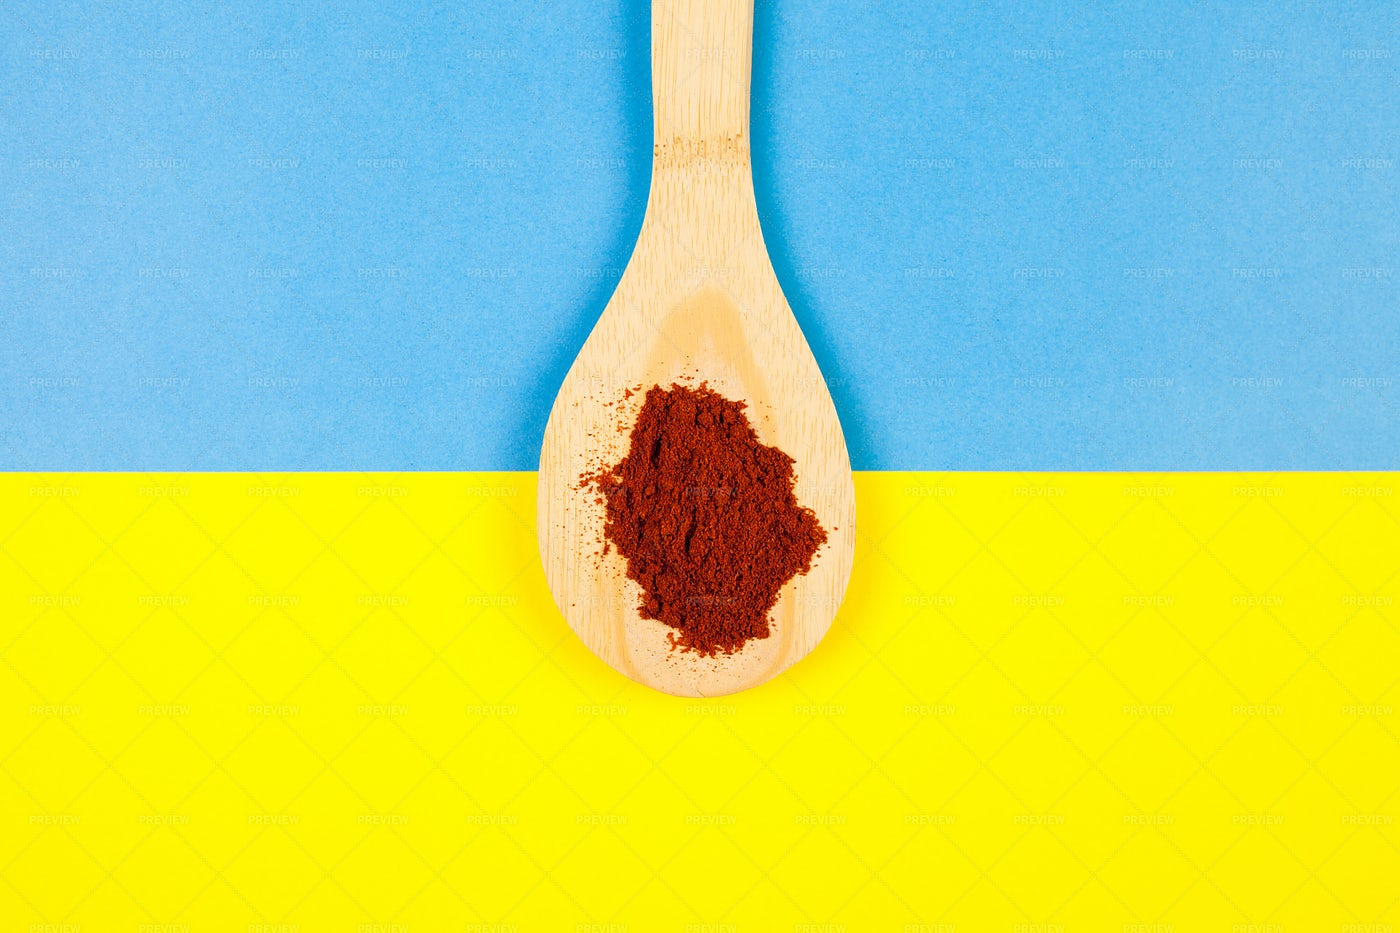 Wooden Spoon With Chili Powder: Stock Photos